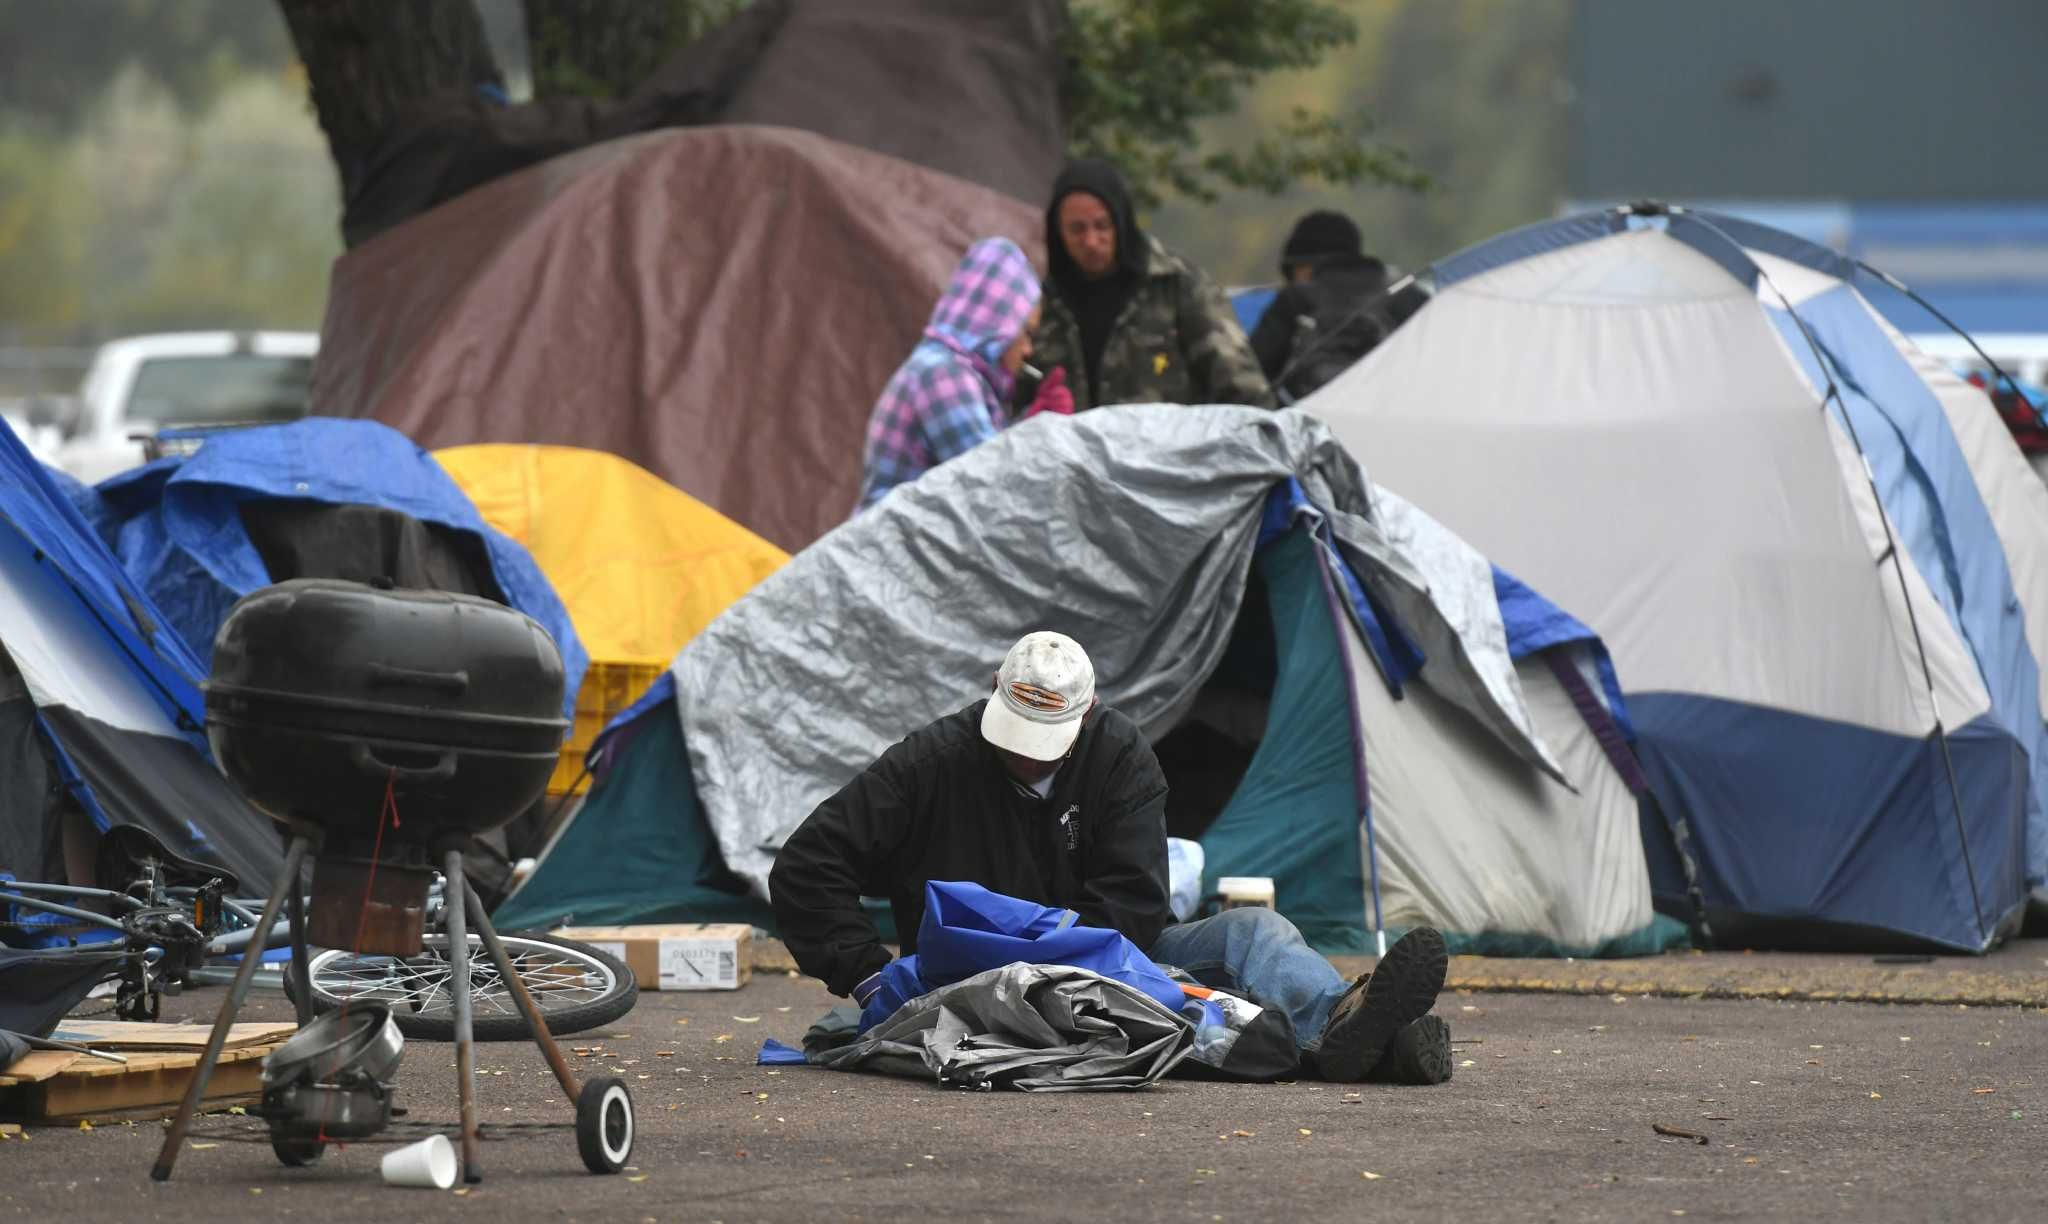 Ap Colorado Springs Is Ordering Homeless People To Leave A Tent City That Has Developed Around A Shelter The Missio Tent Colorado Springs Homeless People